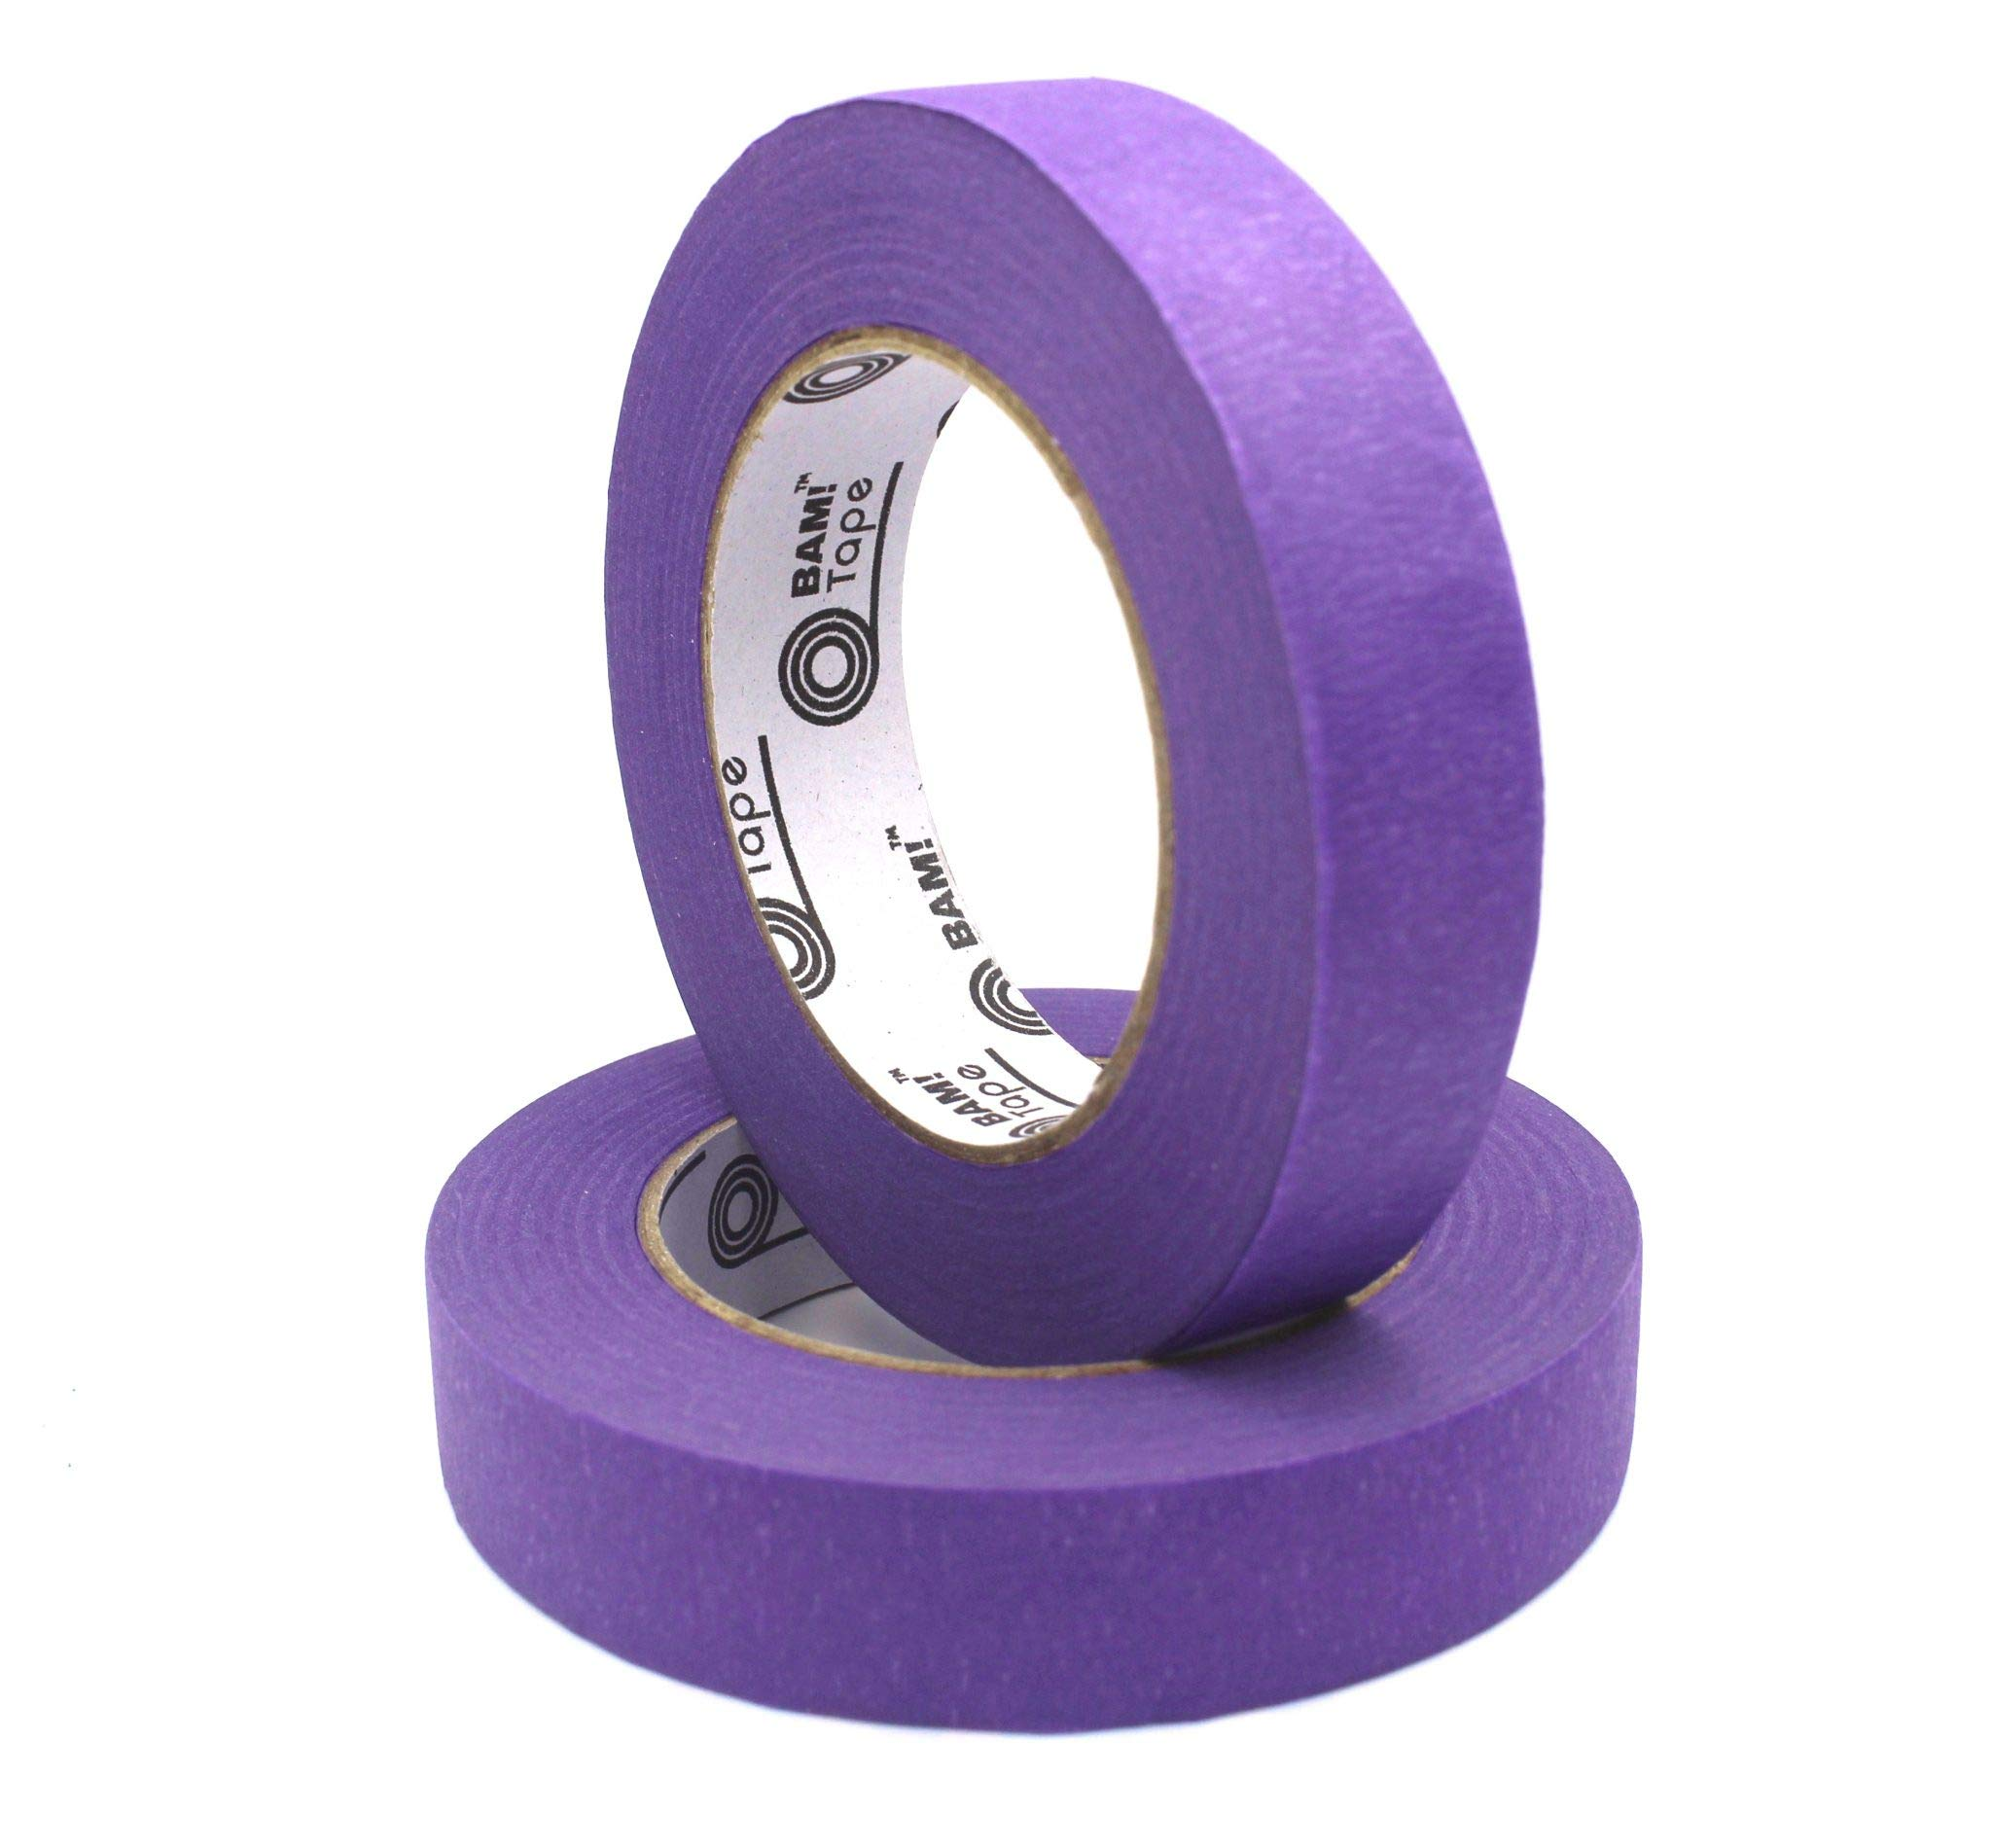 Purple Colored Masking Tape by BAM! Tape   Arts and Crafts Tape   STEM Preschool Learning   Kids Art Supplies and Crafting Kit   Painter Tape   2 Large Rolls 60 Yards by 1 Inch Each